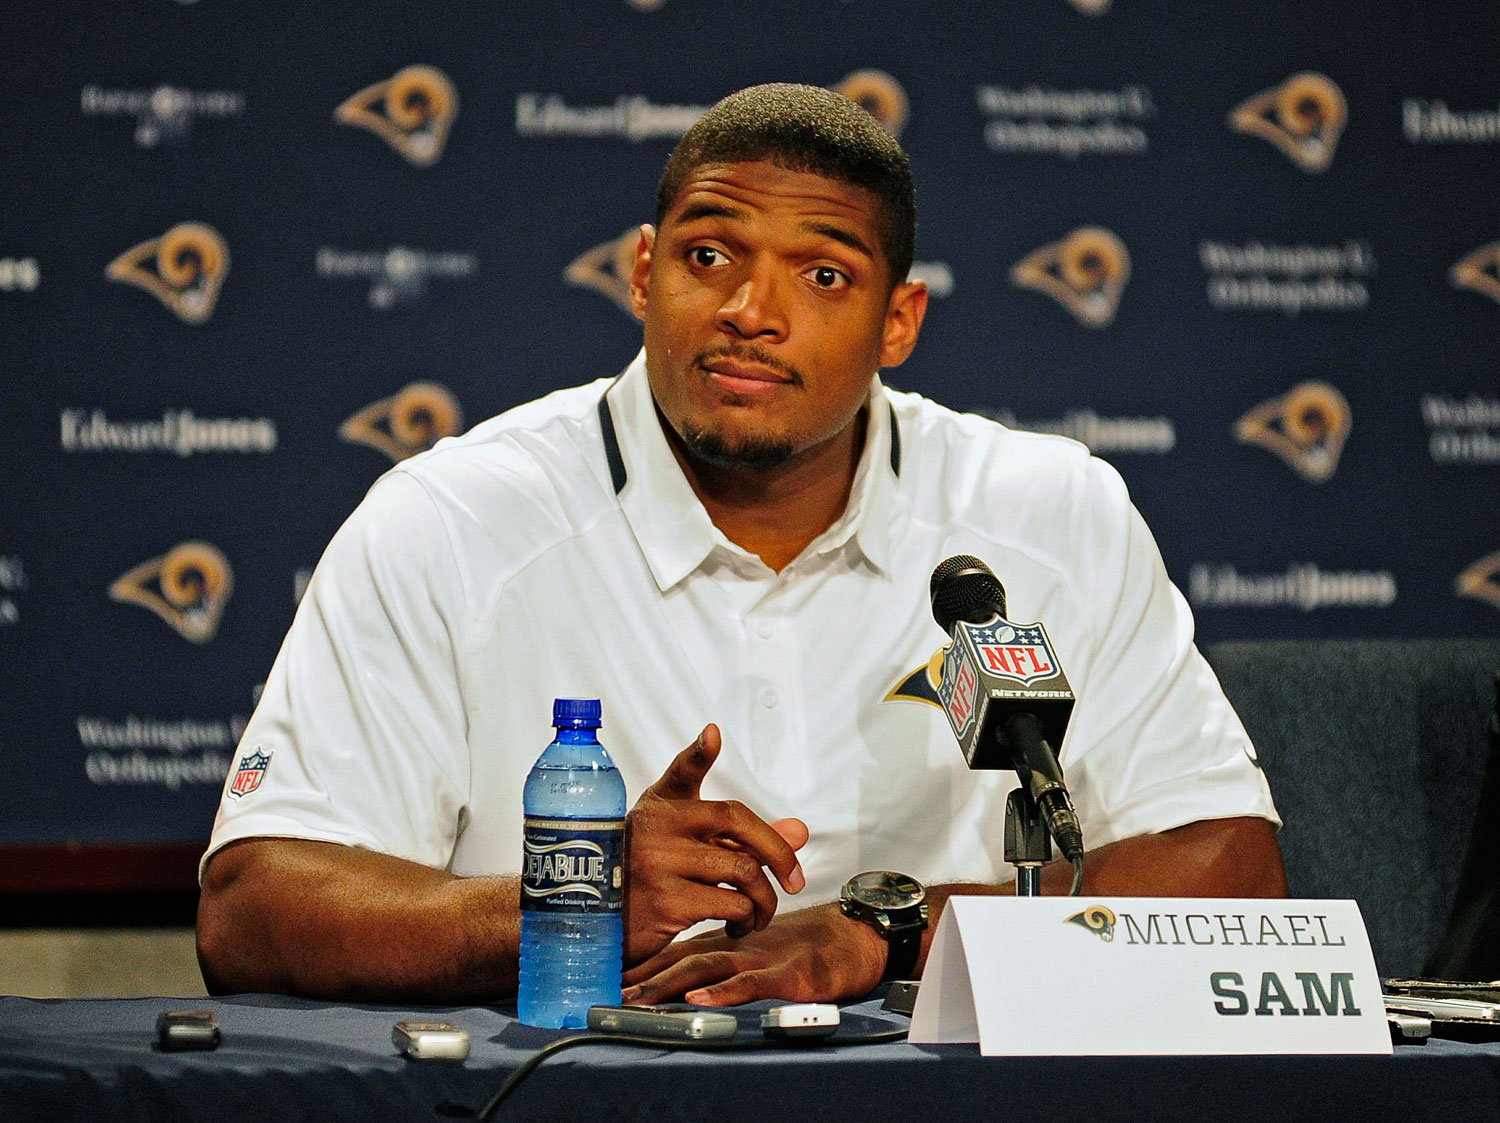 Michael Sam, gay assumido, dá tempo na carreira.